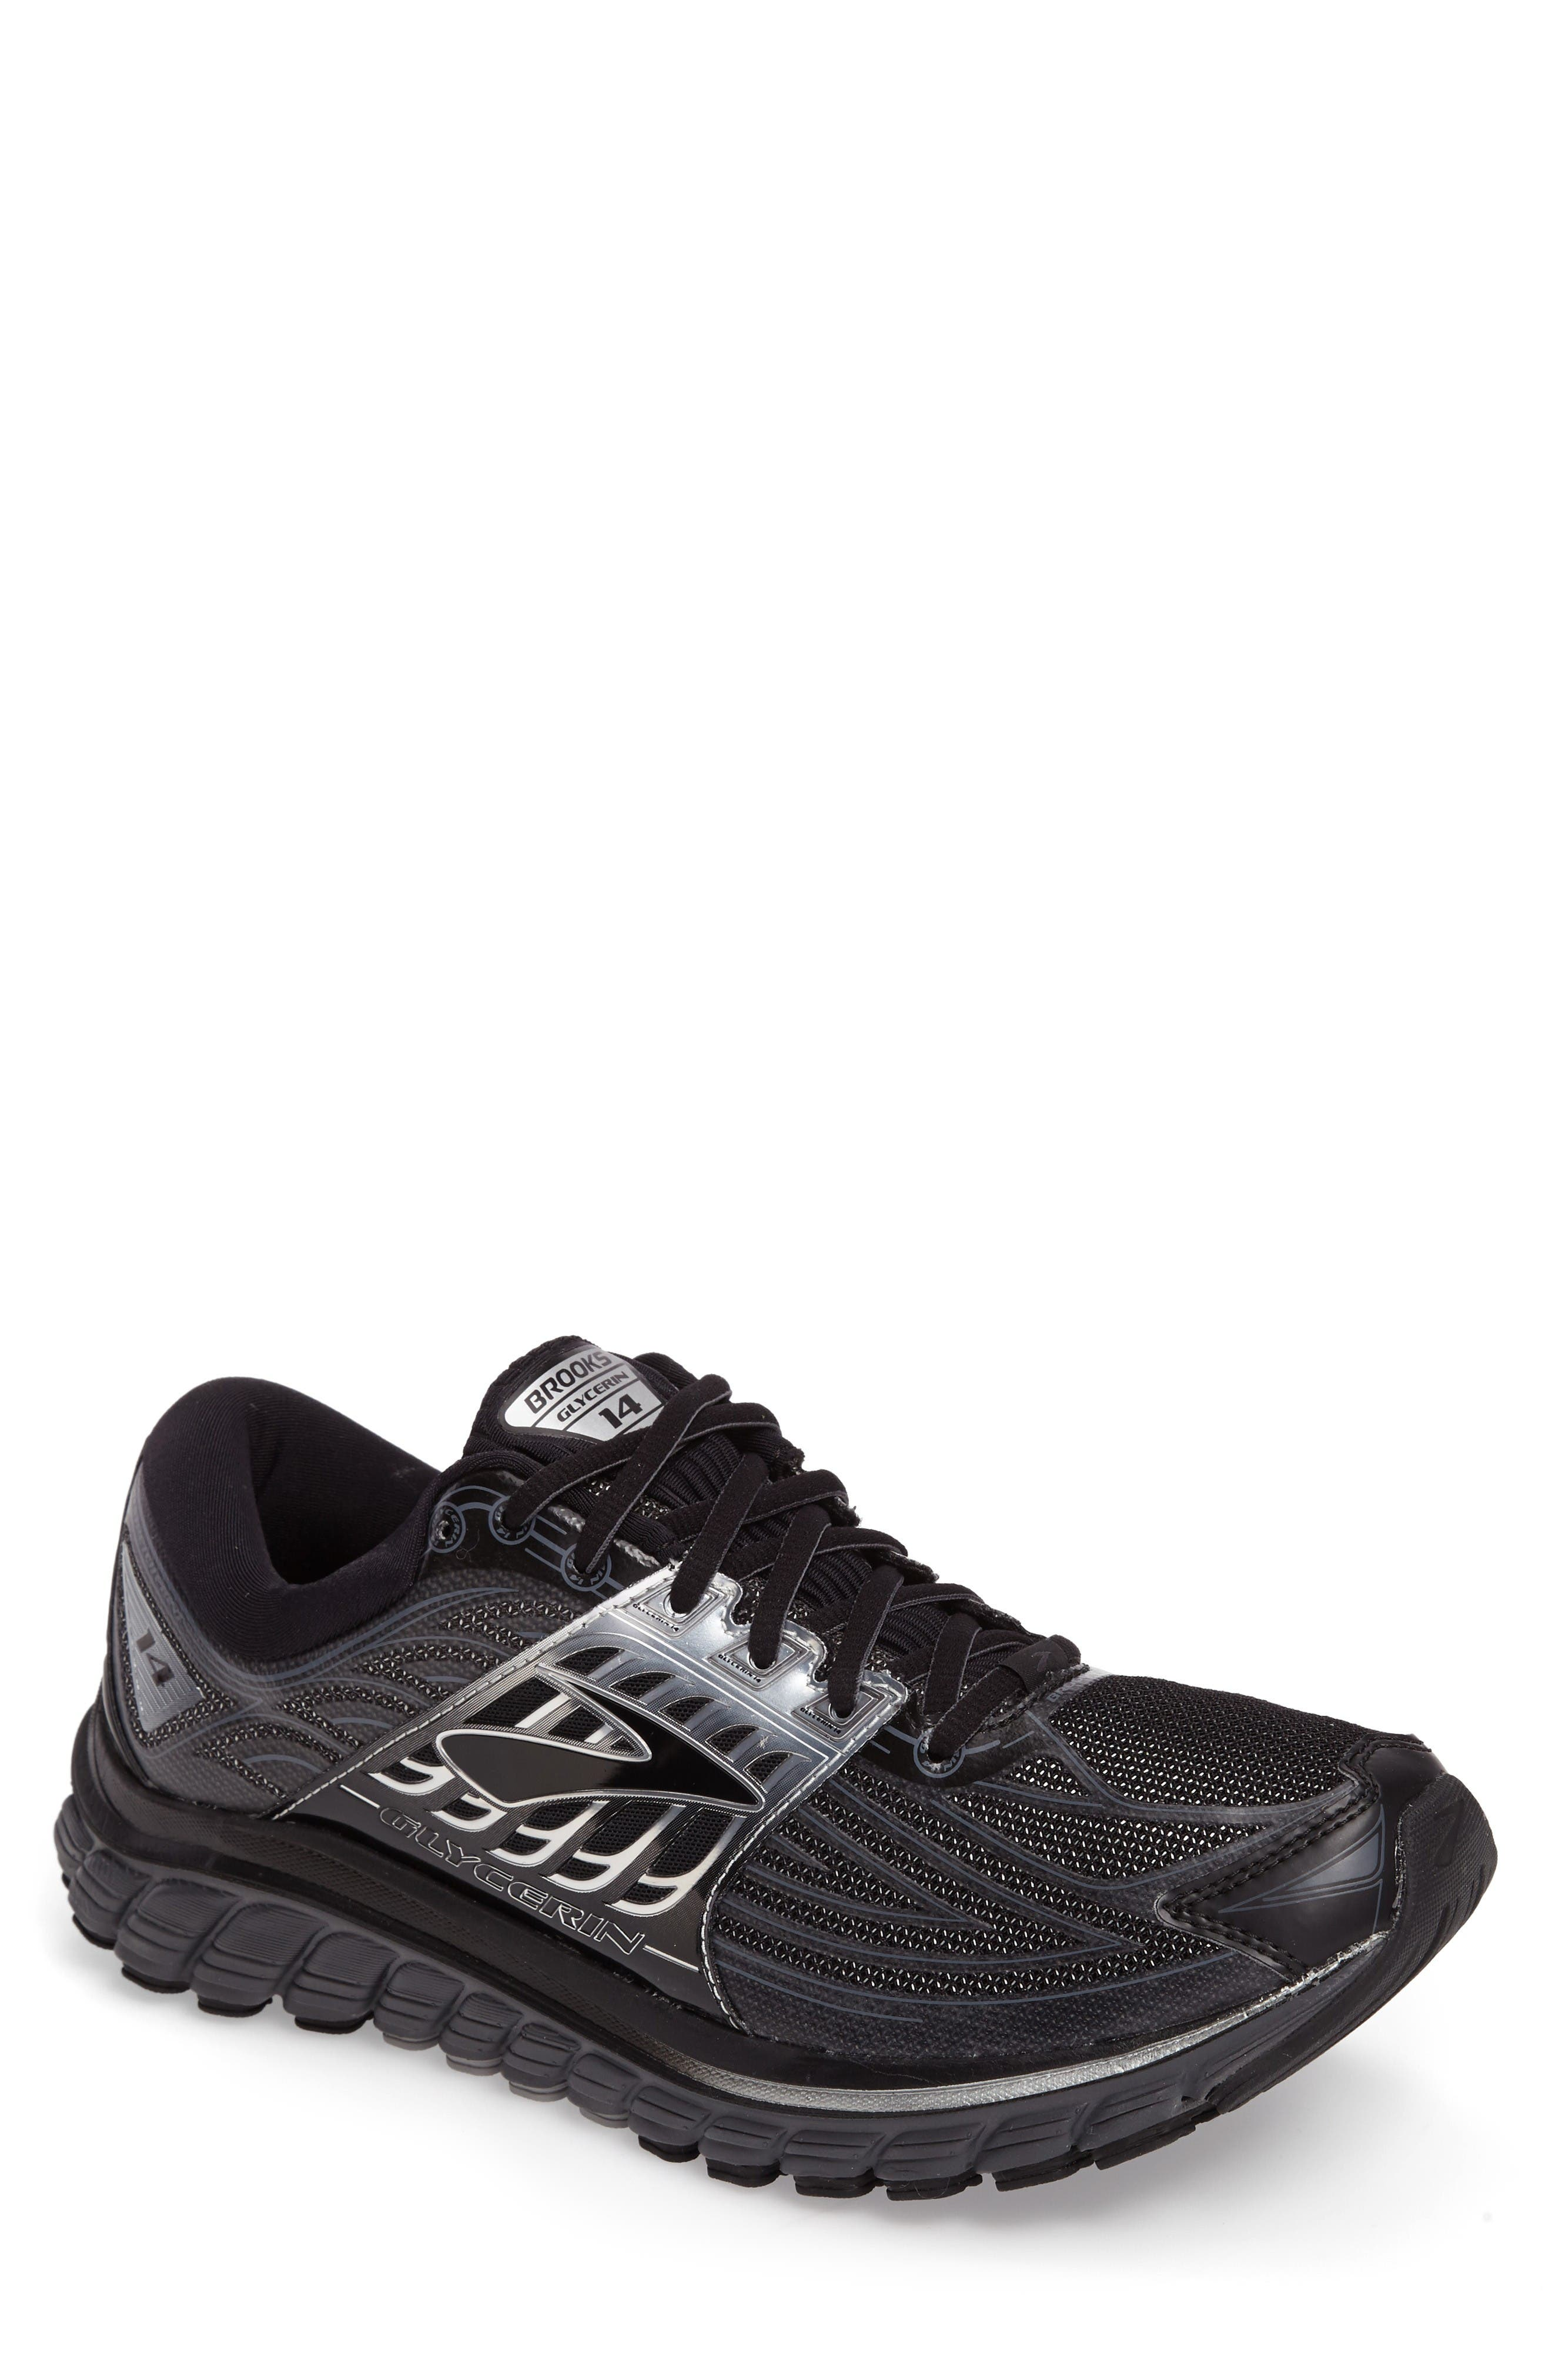 'Glycerin 14' Running Shoe,                         Main,                         color, Black/ Anthracite/ Silver